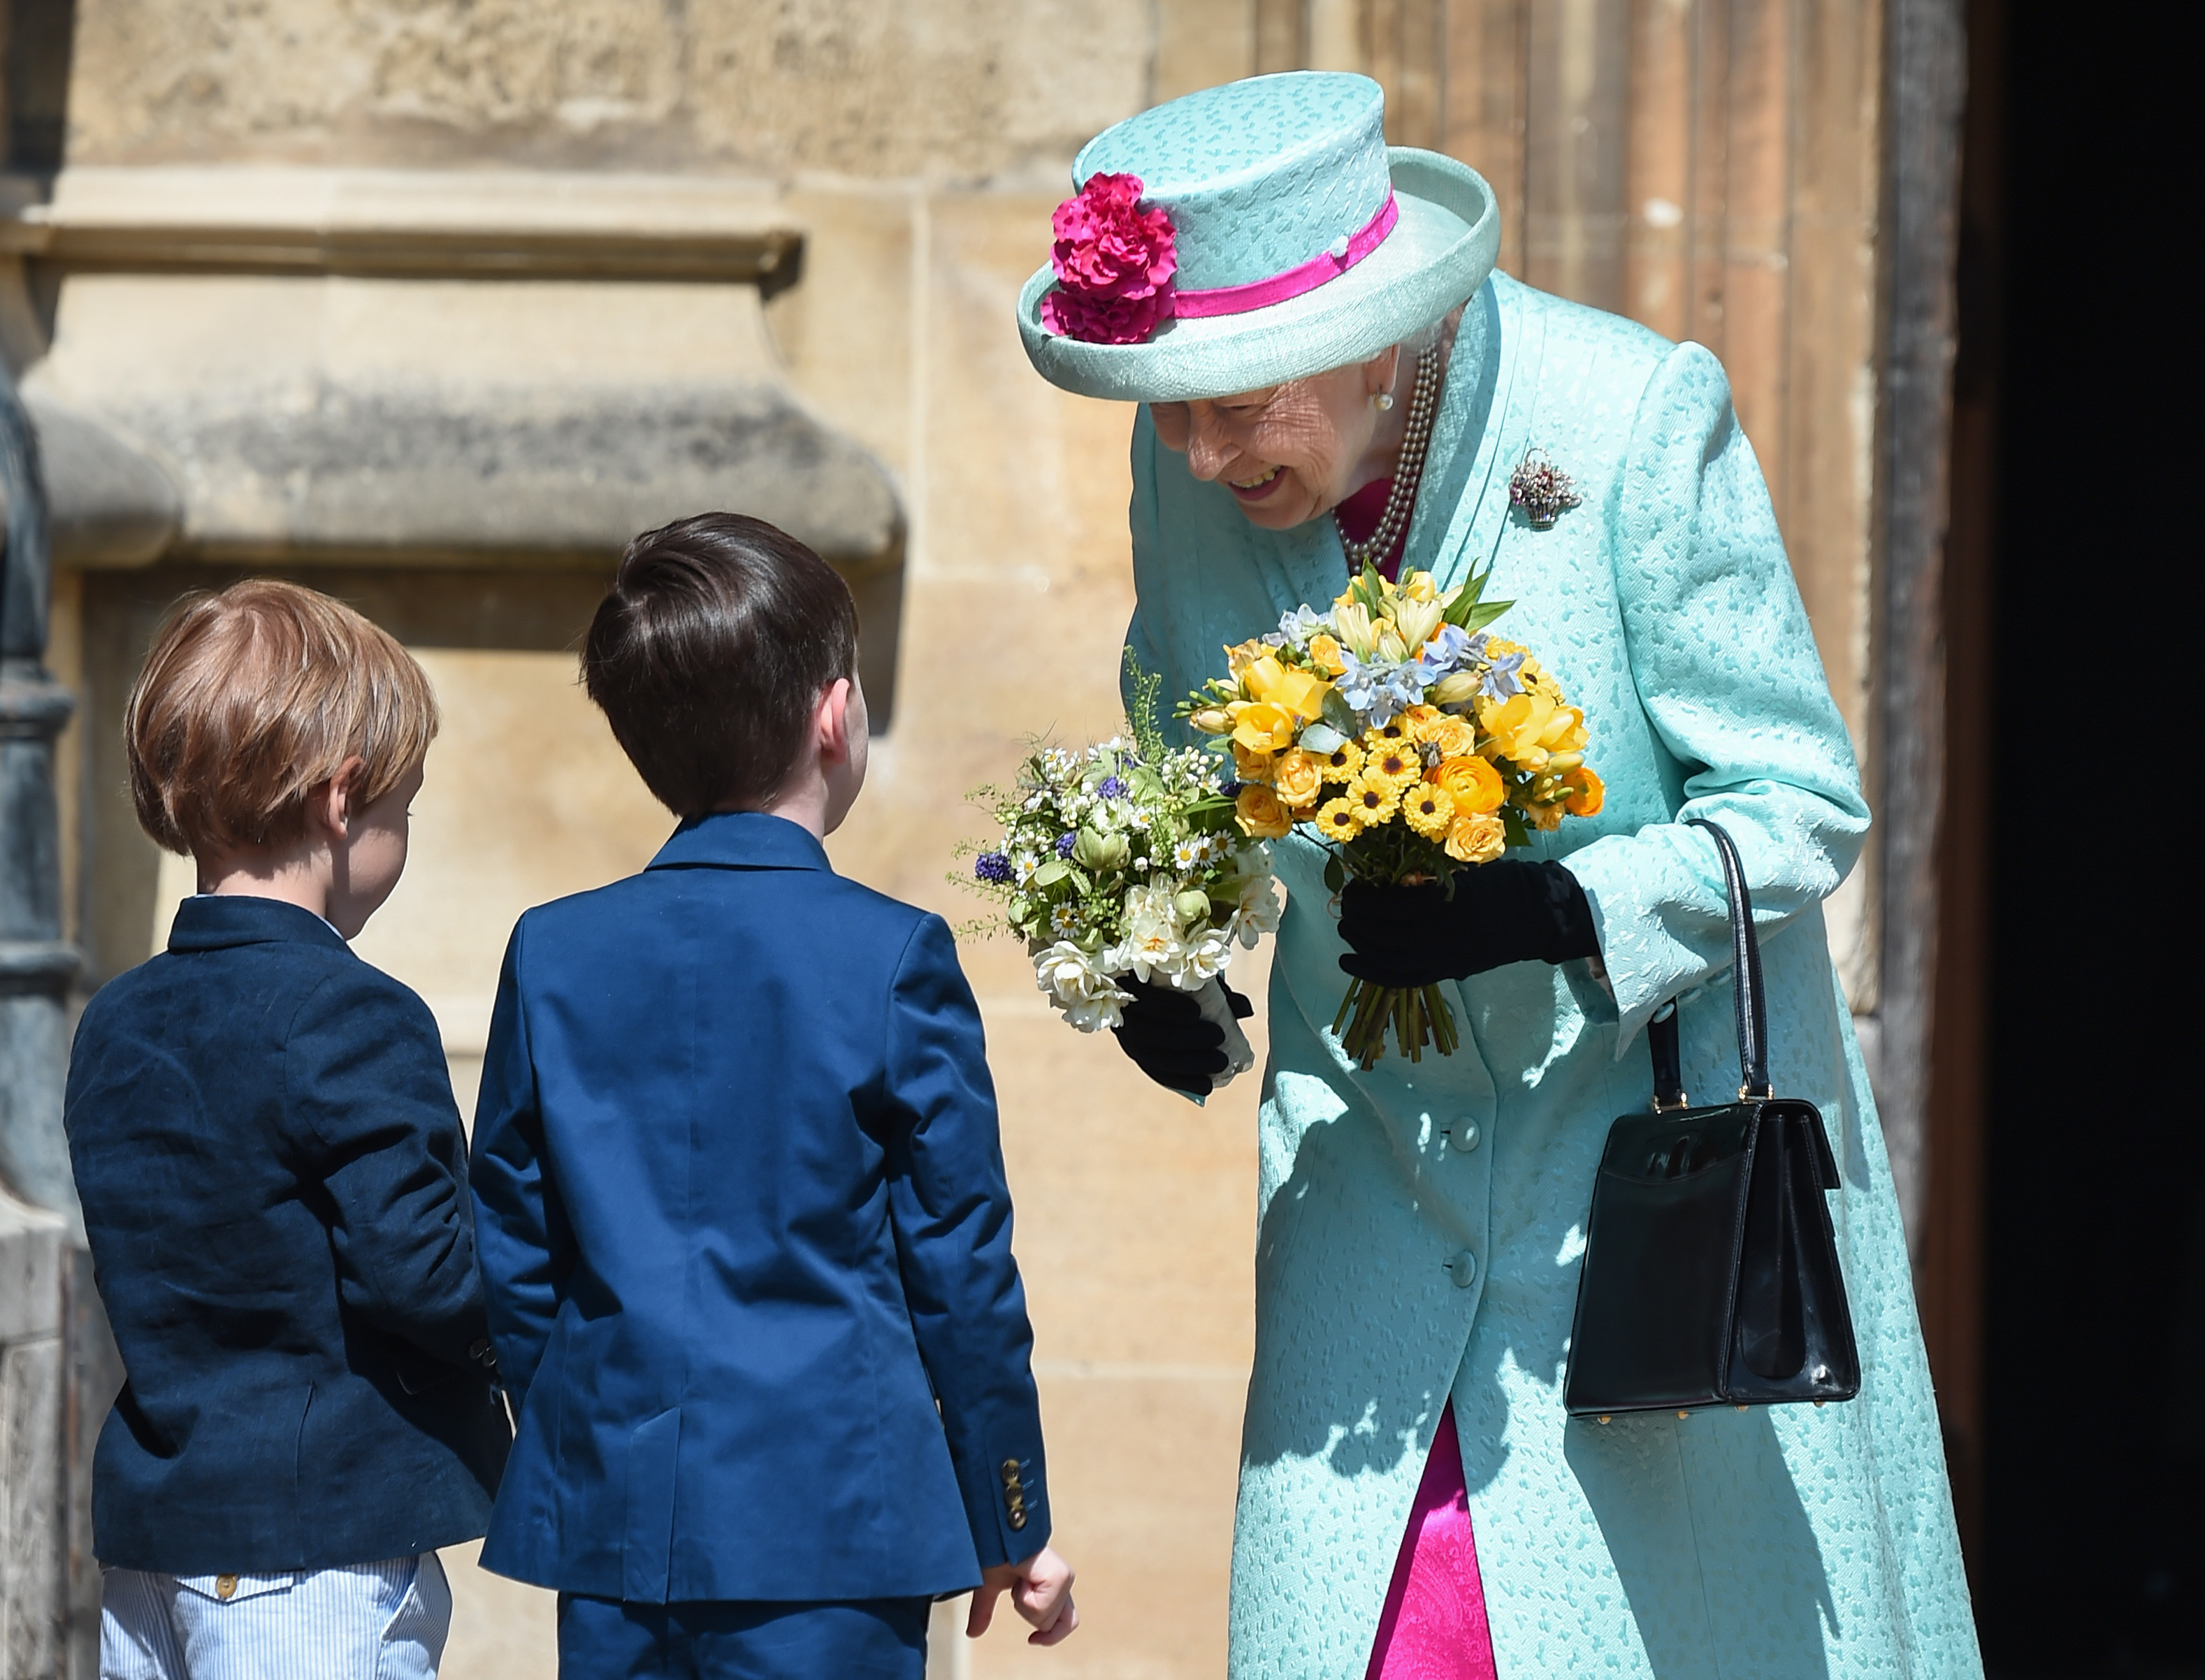 WINDSOR, ENGLAND - APRIL 21: Queen Elizabeth II departs the Easter Sunday service at St George's Chapel on April 21, 2019 in Windsor, England. (Photo by Eamonn M. McCormack/Getty Images)